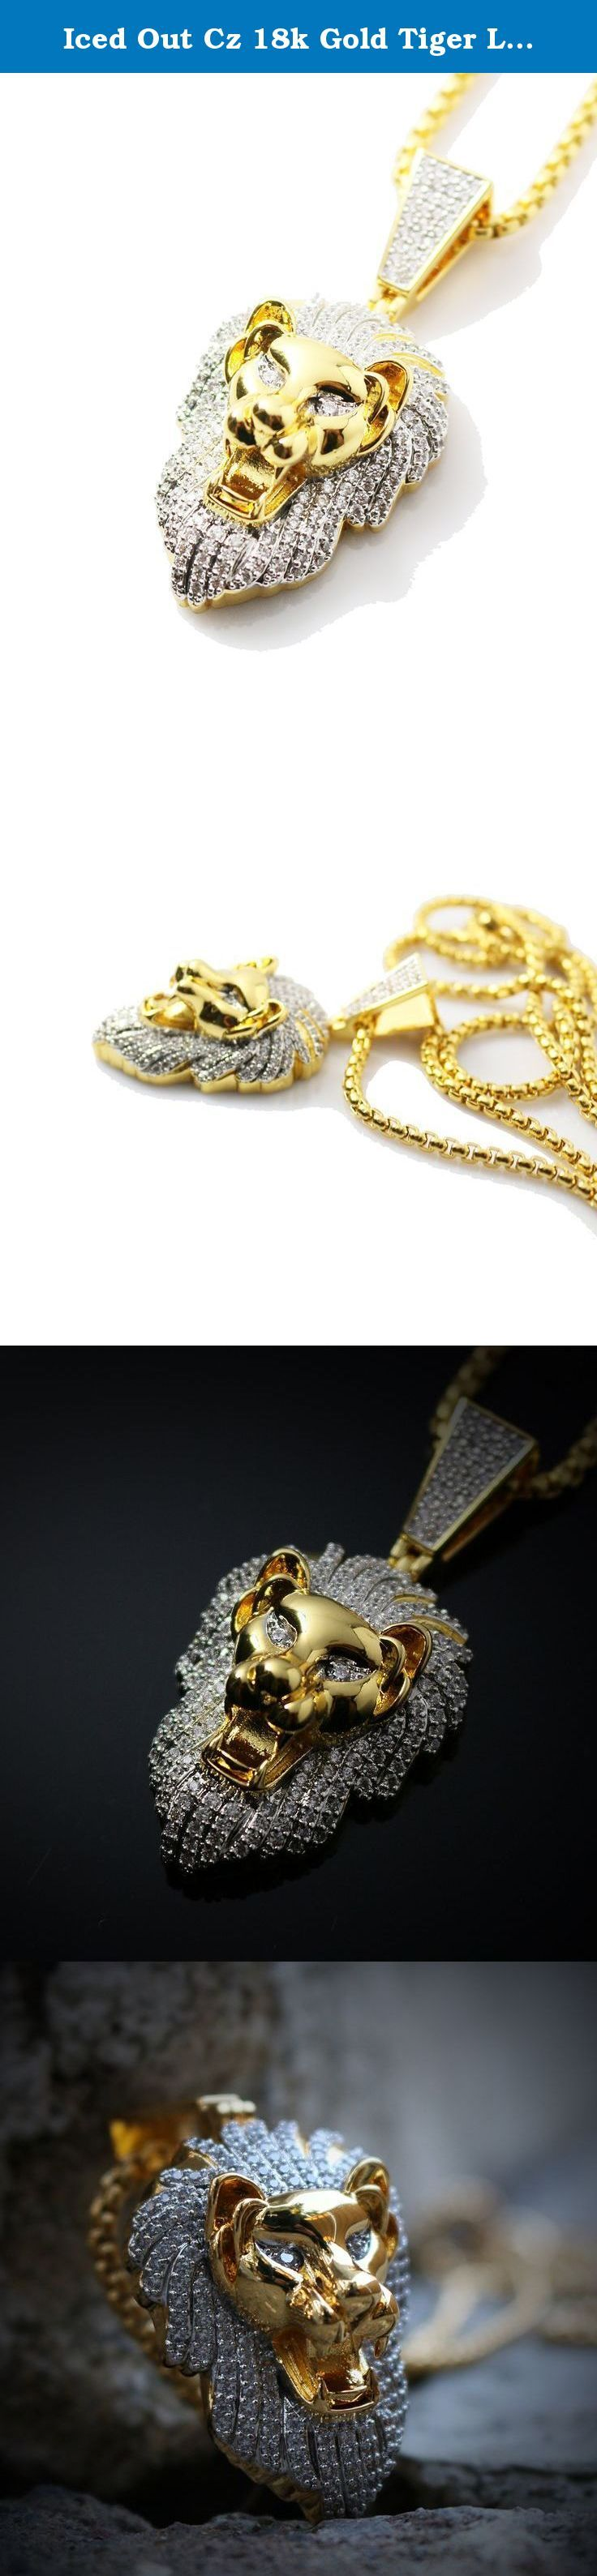 Iced Out Cz 18k Gold Tiger Lion Roar Stainless Steel Box Chain Pendant Necklace. Iced Out CZ 18K Gold Tiger Lion Roar Stainless Steel Box Chain Pendant Necklace Chain is made of 316 stainless steel with a 18k gold plating. White lab simulated diamonds 18k Gold and rhodium plated Pendant size is 1.5 inches in length. This pendant comes with a 2.5mm width 26 inch length 316 stainless steel 18k gold pearl box chain.